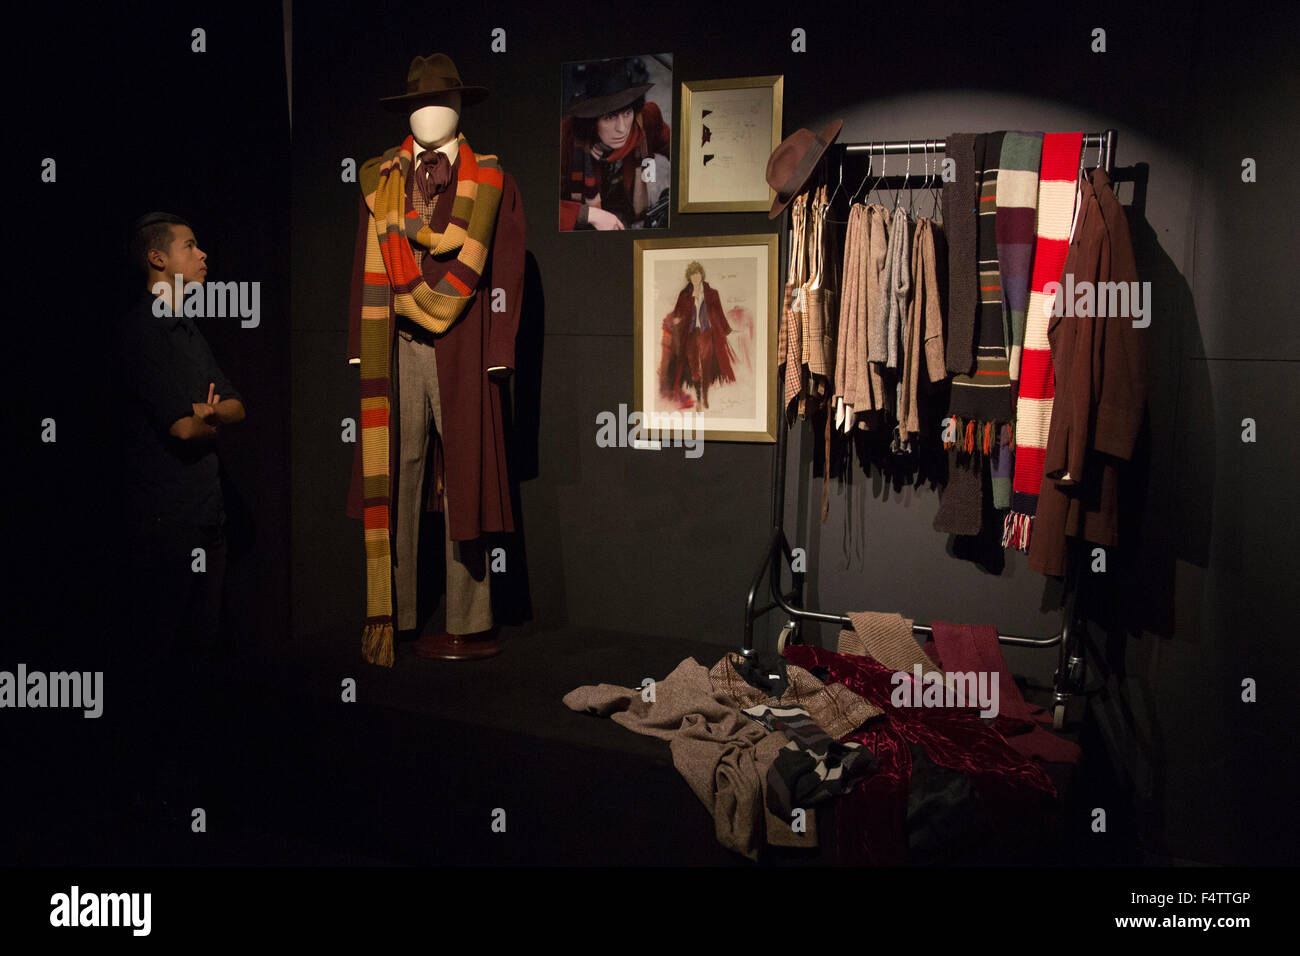 London, UK. 22/10/2015. Costumes for the 4th doctor Tom Baker, Doctor Who. Costumes from the exhibition Dressed - Stock Image